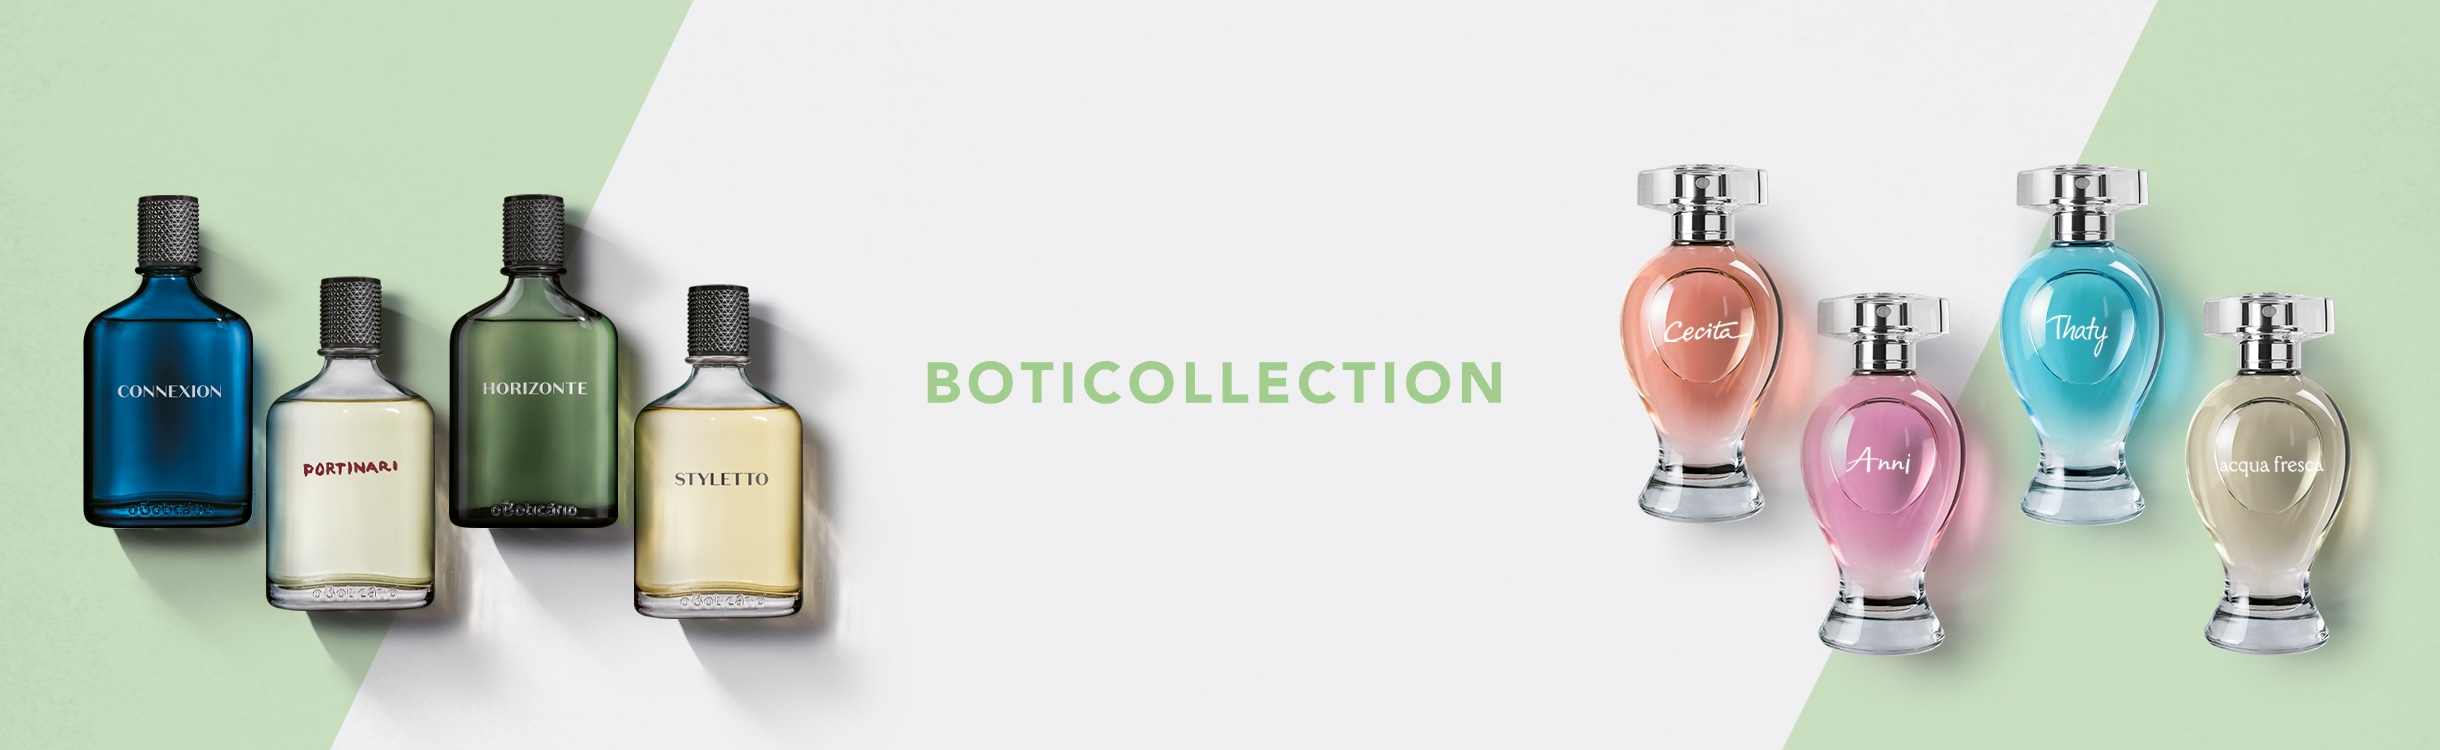 Boticollection